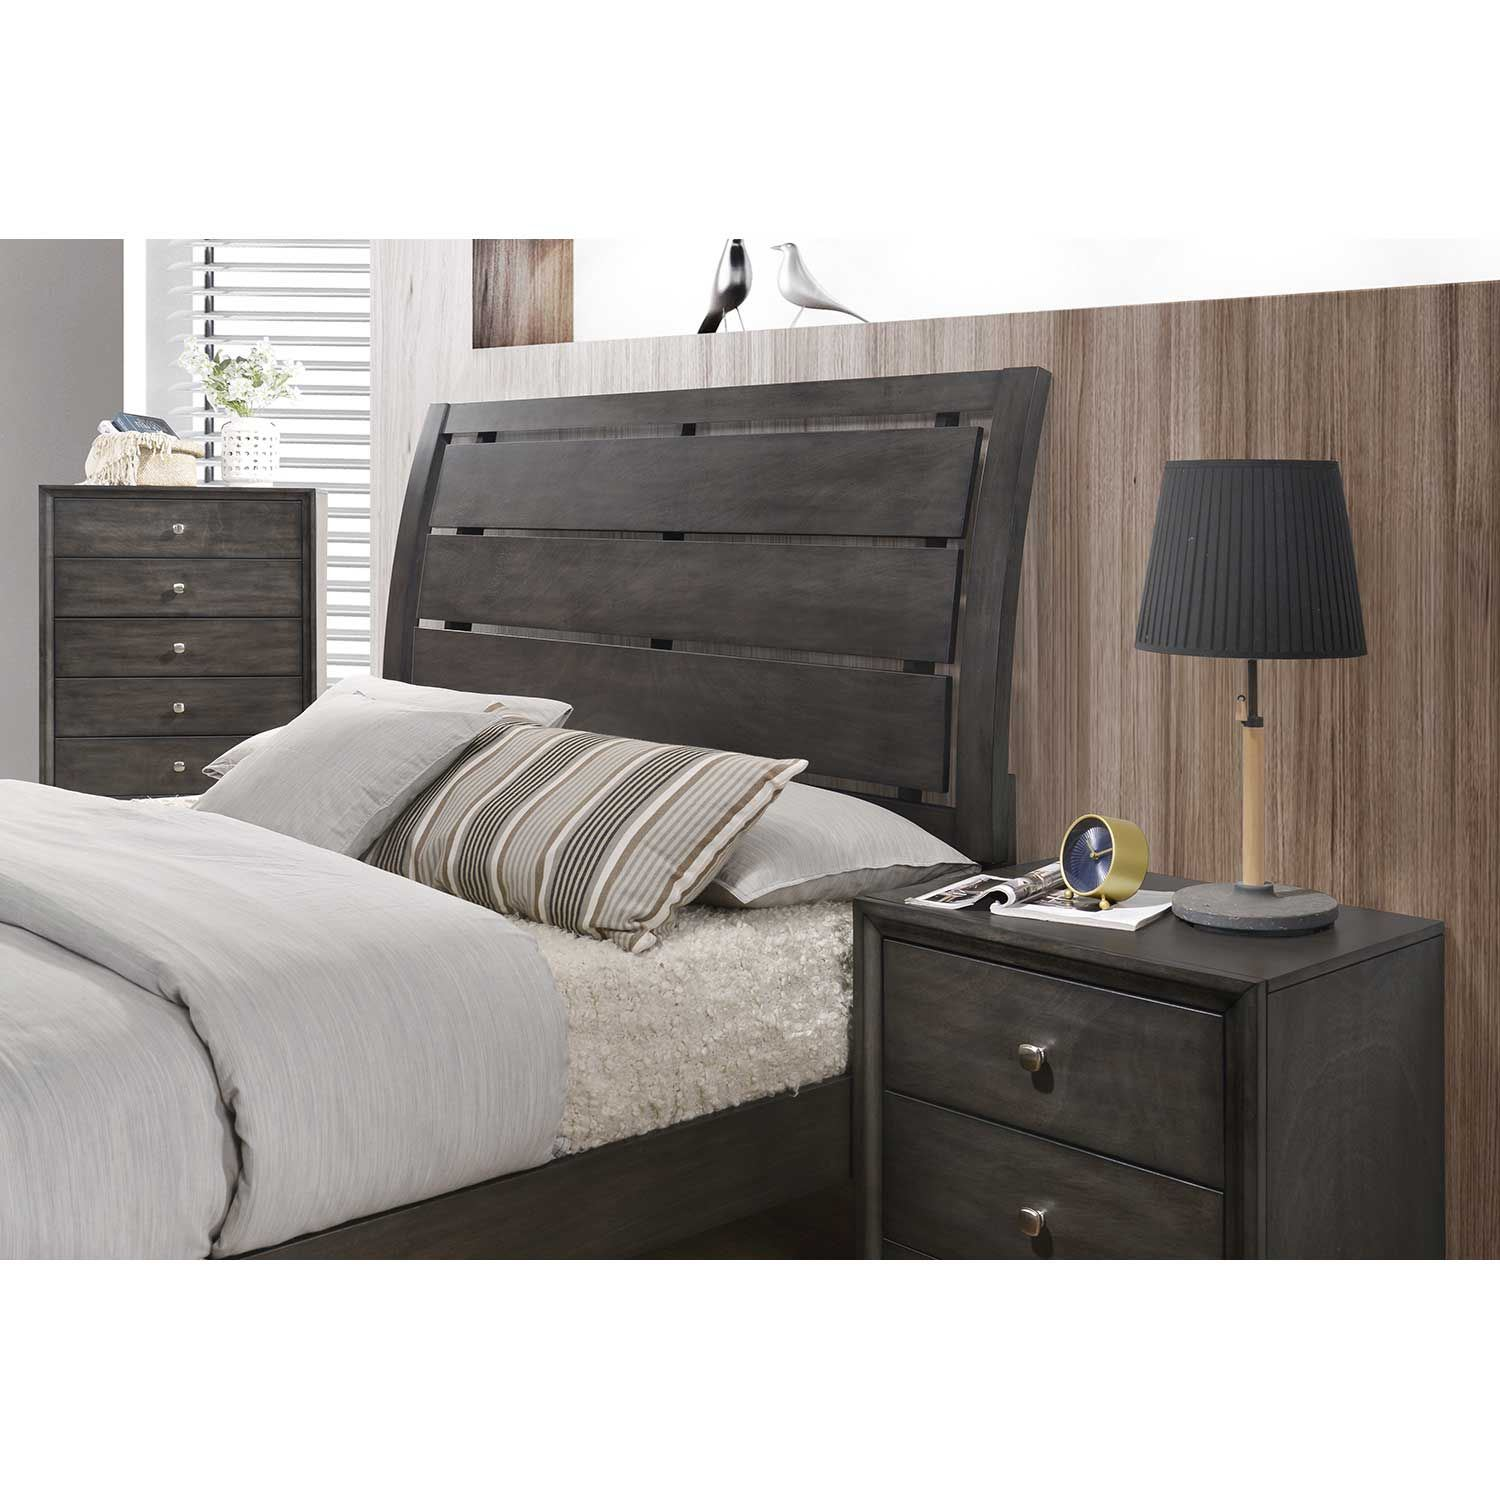 Picture of Grant Twin Panel Bed